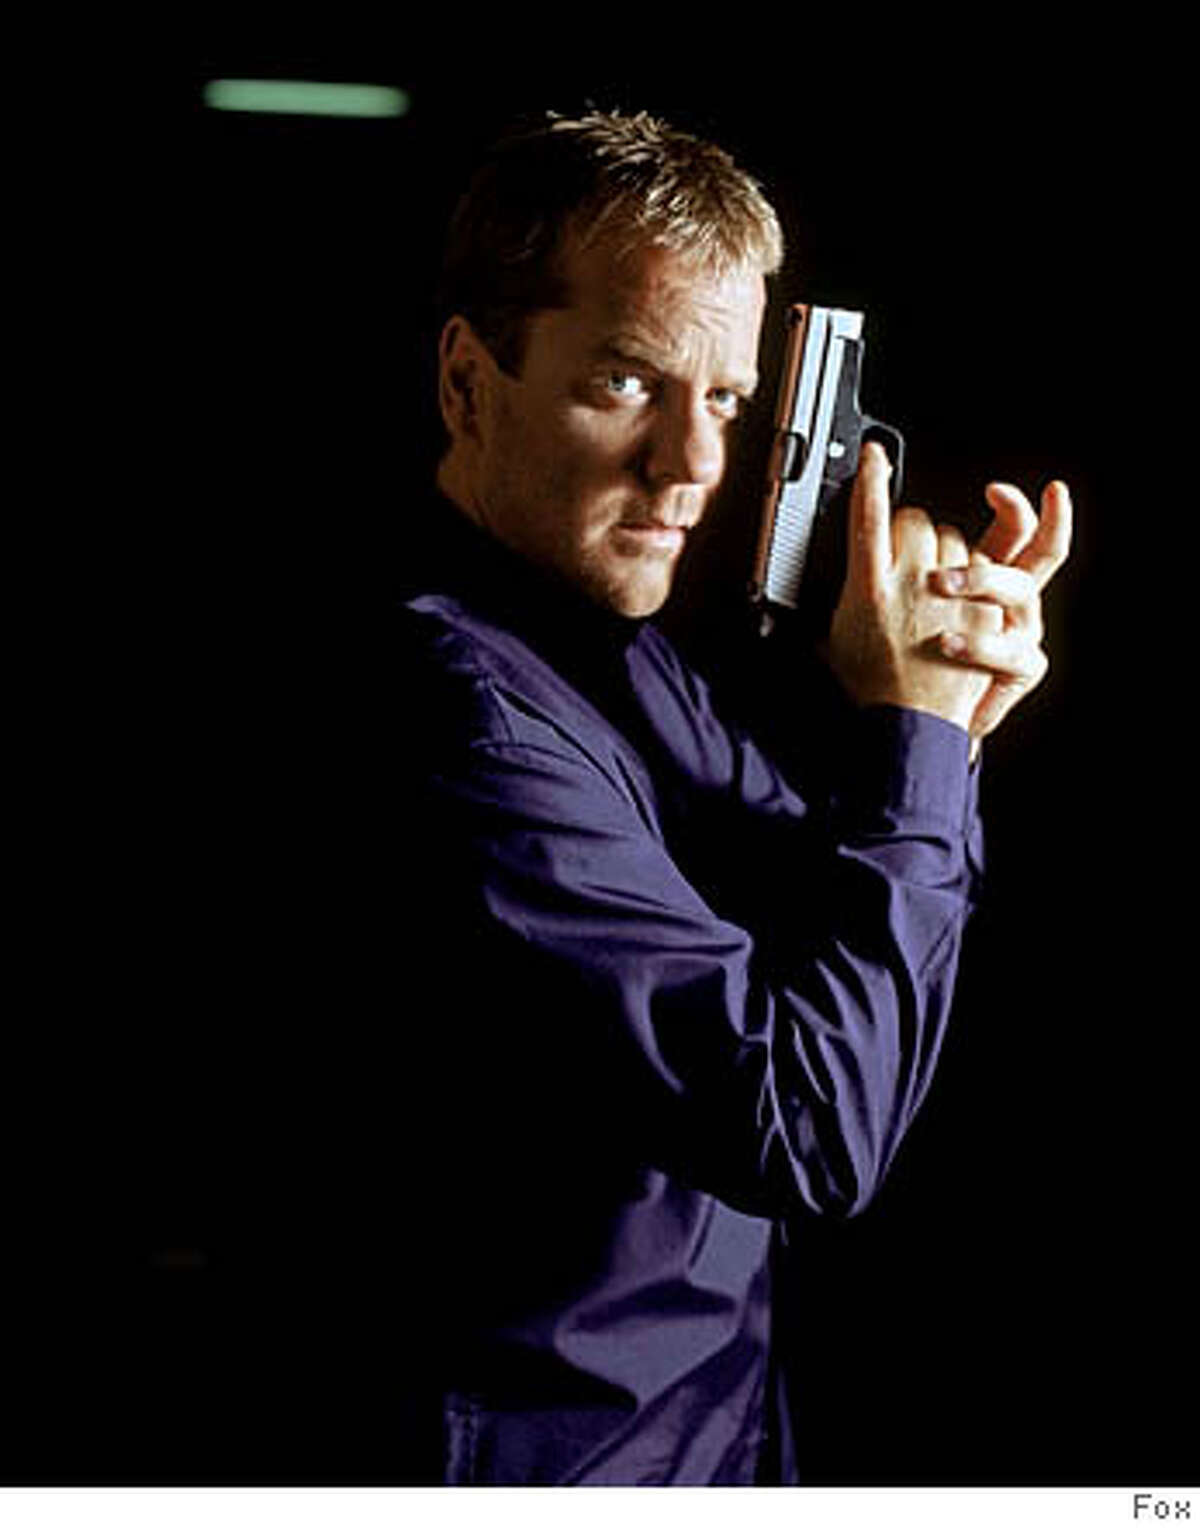 THIS IS A HANDOUT IMAGE. PLEASE VERIFY RIGHTS. GOODMAN28b-C-24OCT02-DD-HO Kiefer Sutherland as Jack Bauer on 24. ��2002 FOX BROADCASTING COMPANY. CAT